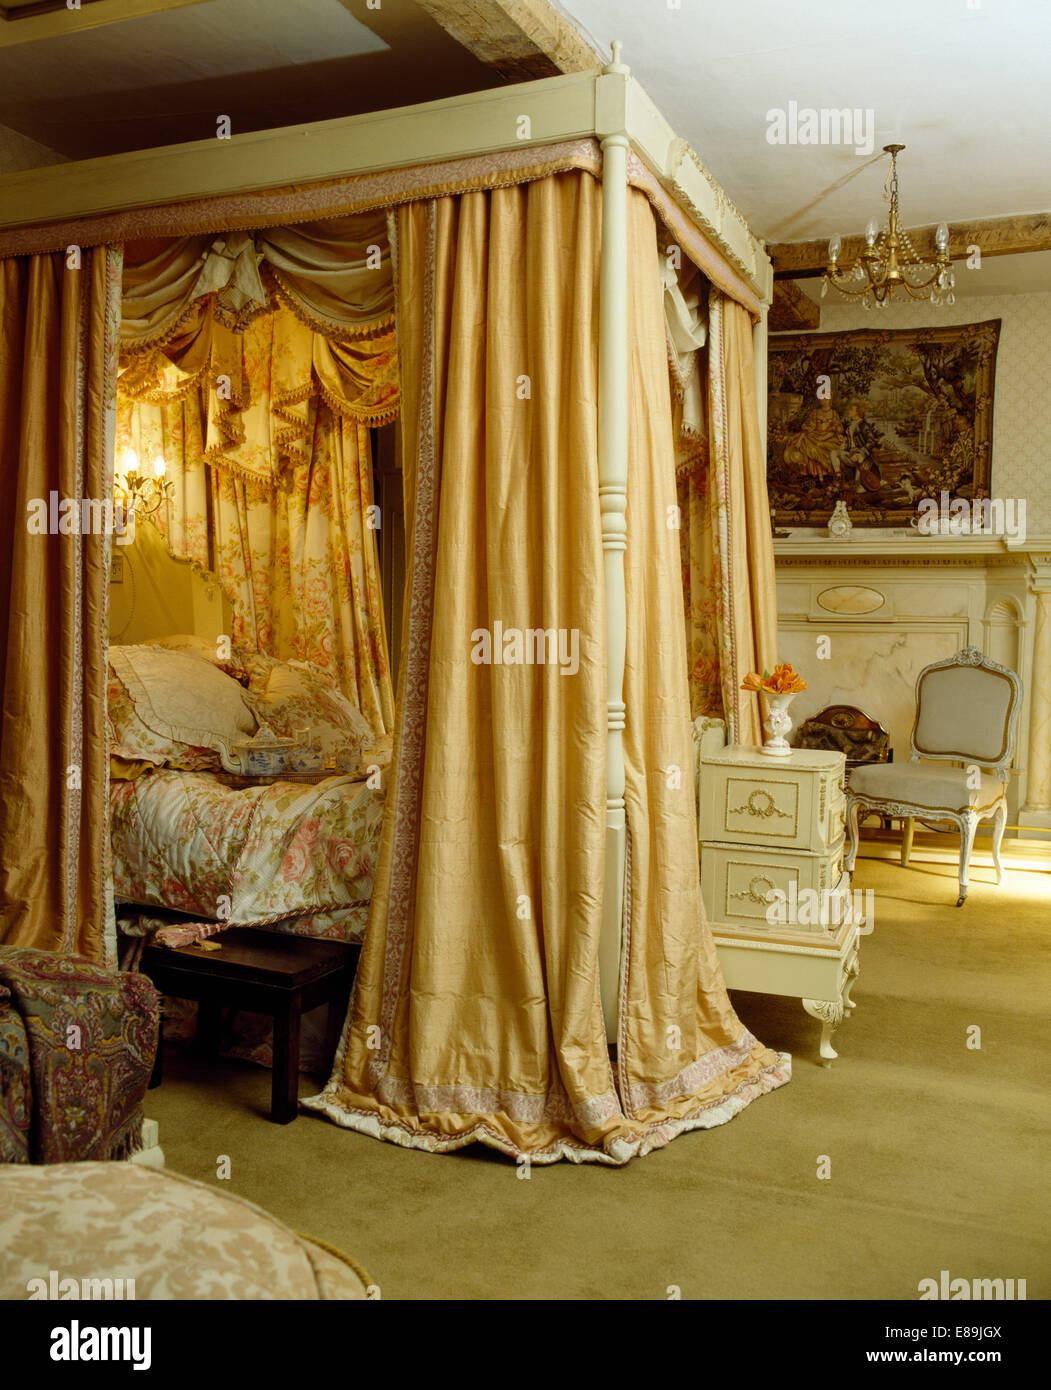 Opulent cream silk drapes on four poster bed in countgry bedroom stock photo royalty free image - Four poster bed curtains ...